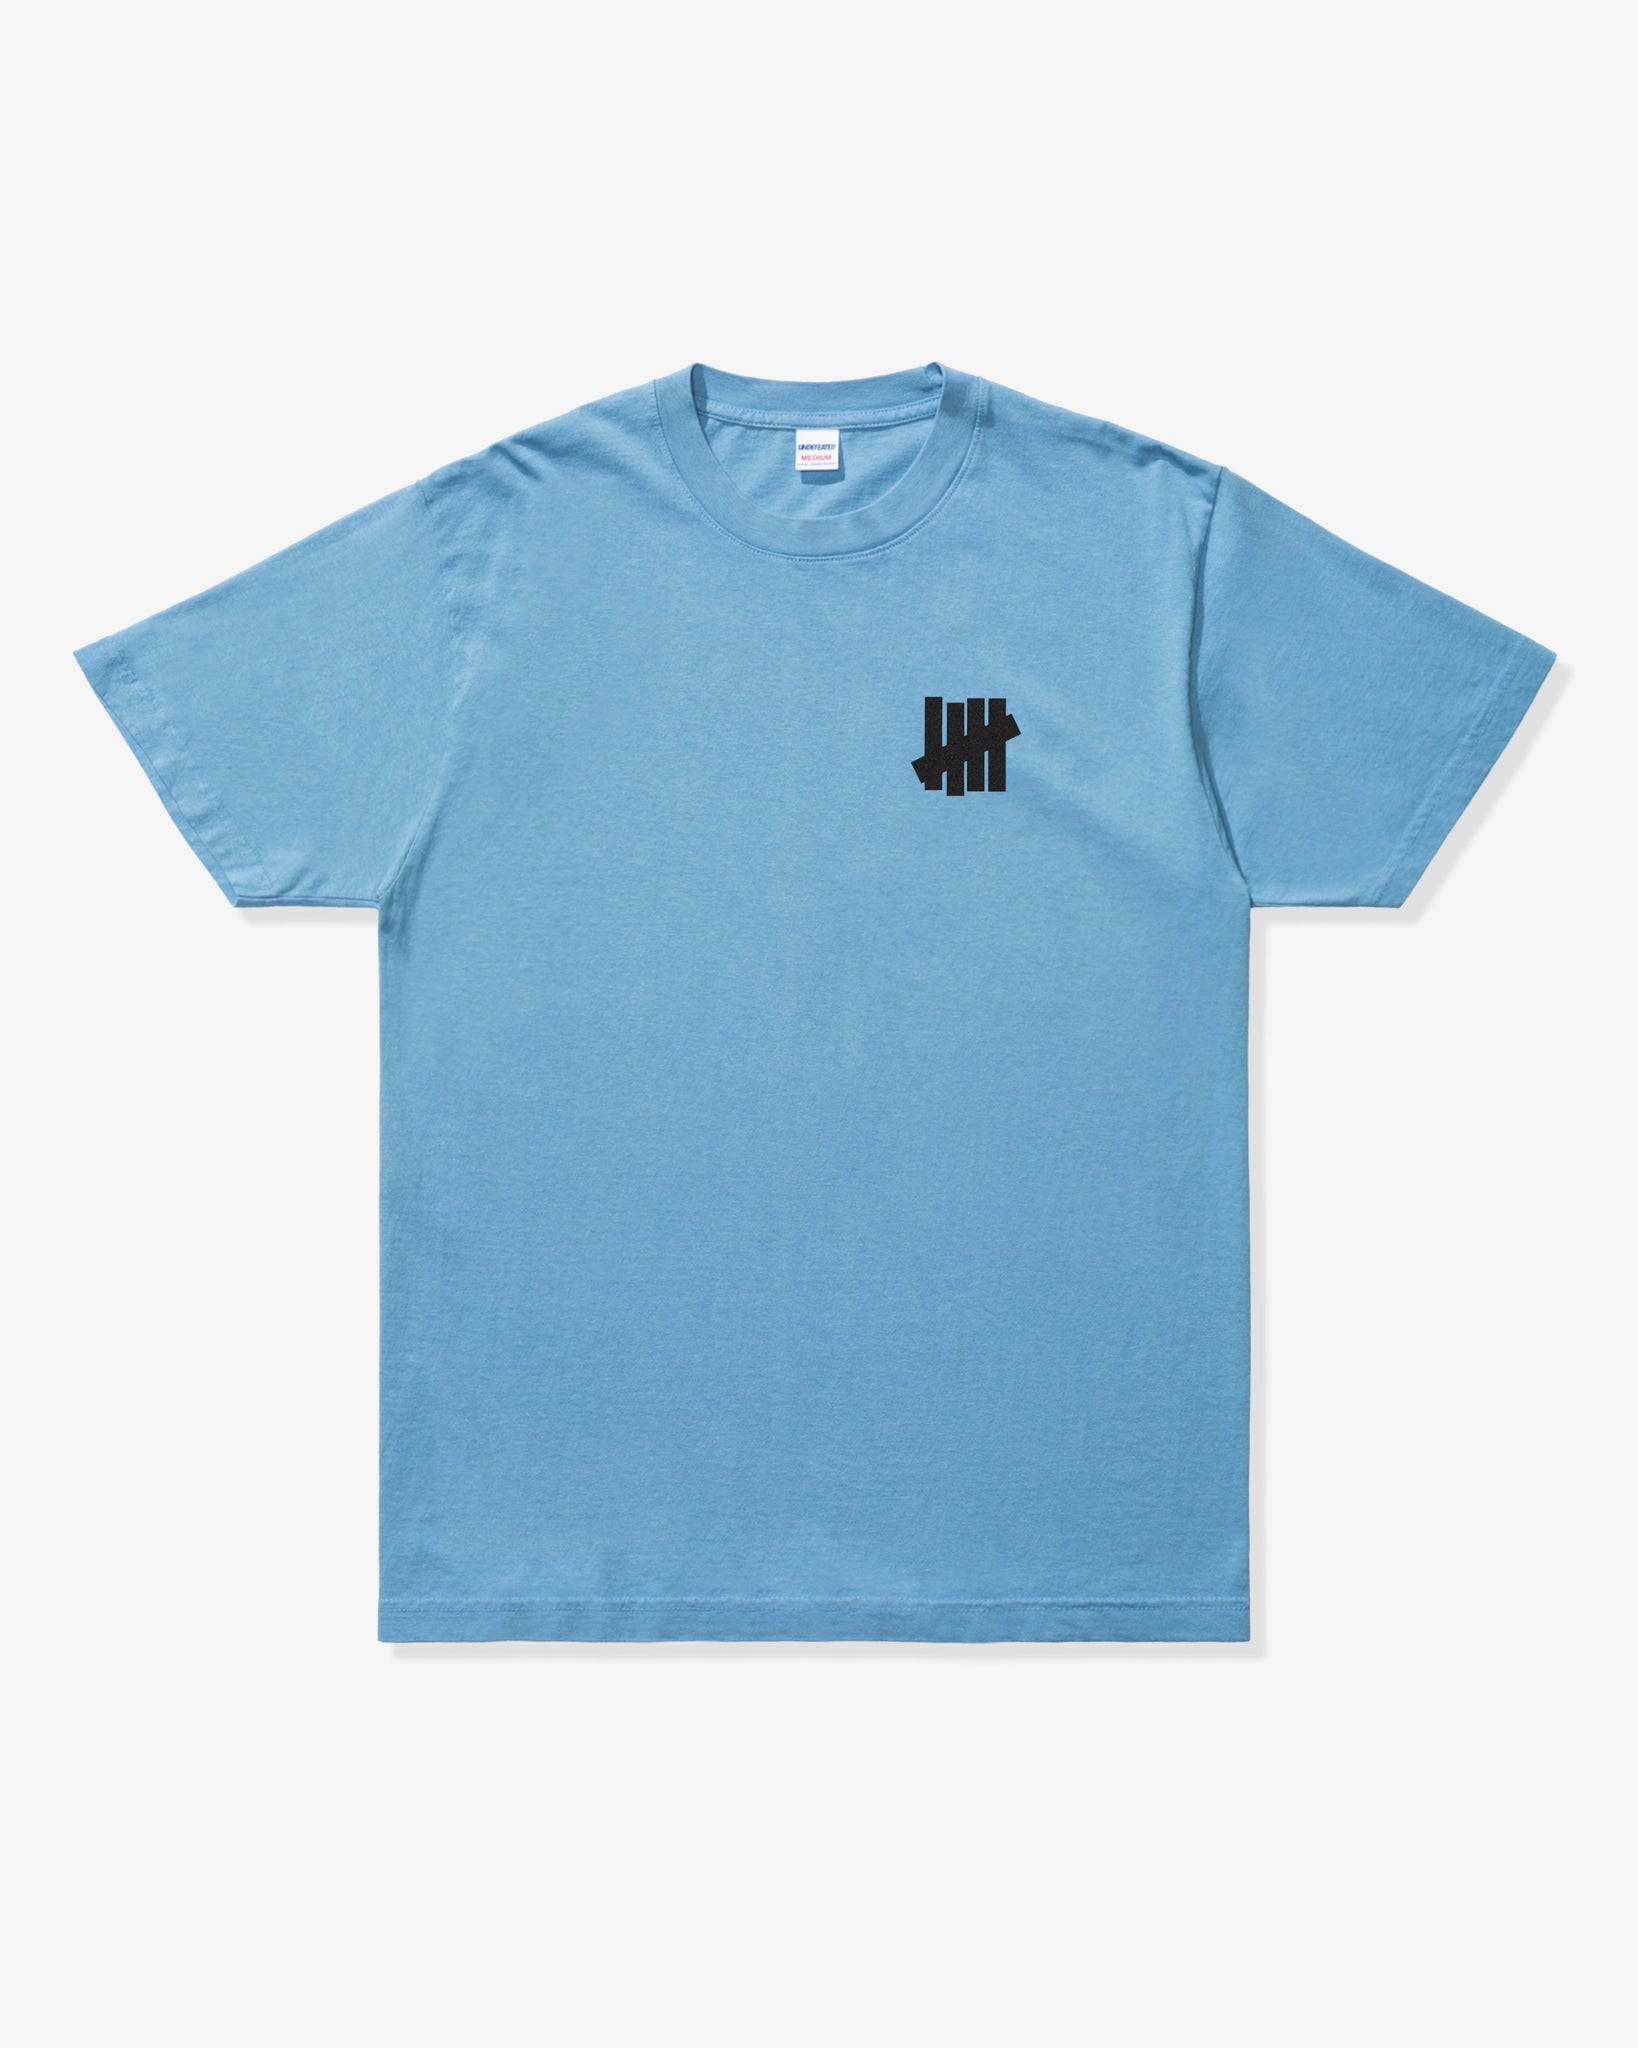 UNDEFEATED ICON S/S TEE